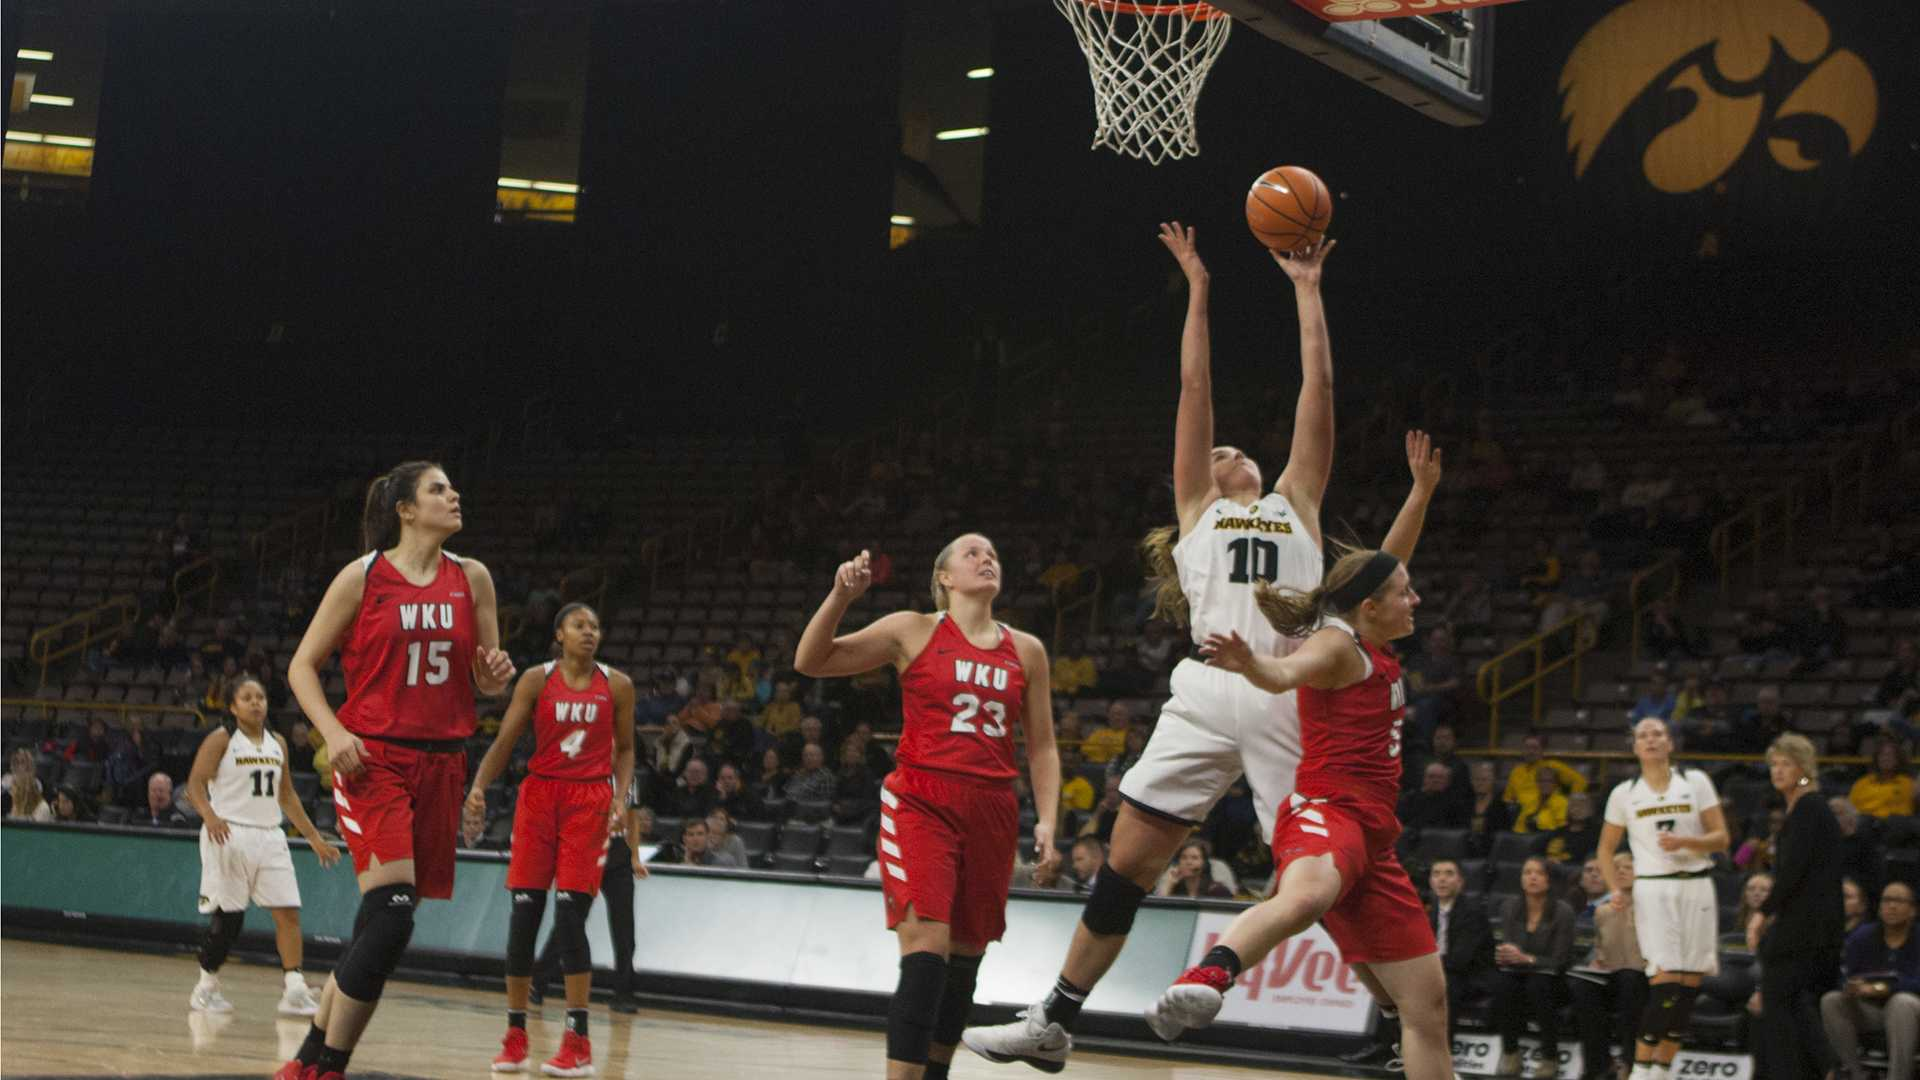 Iowa's Megan Gustafson shooting at Carver Hawkeye Arena on Saturday, Nov. 11, 2017. The Hawkeyes defeated the Lady Toppers 104-97 in overtime. (Ashley Morris/The Daily Iowan)